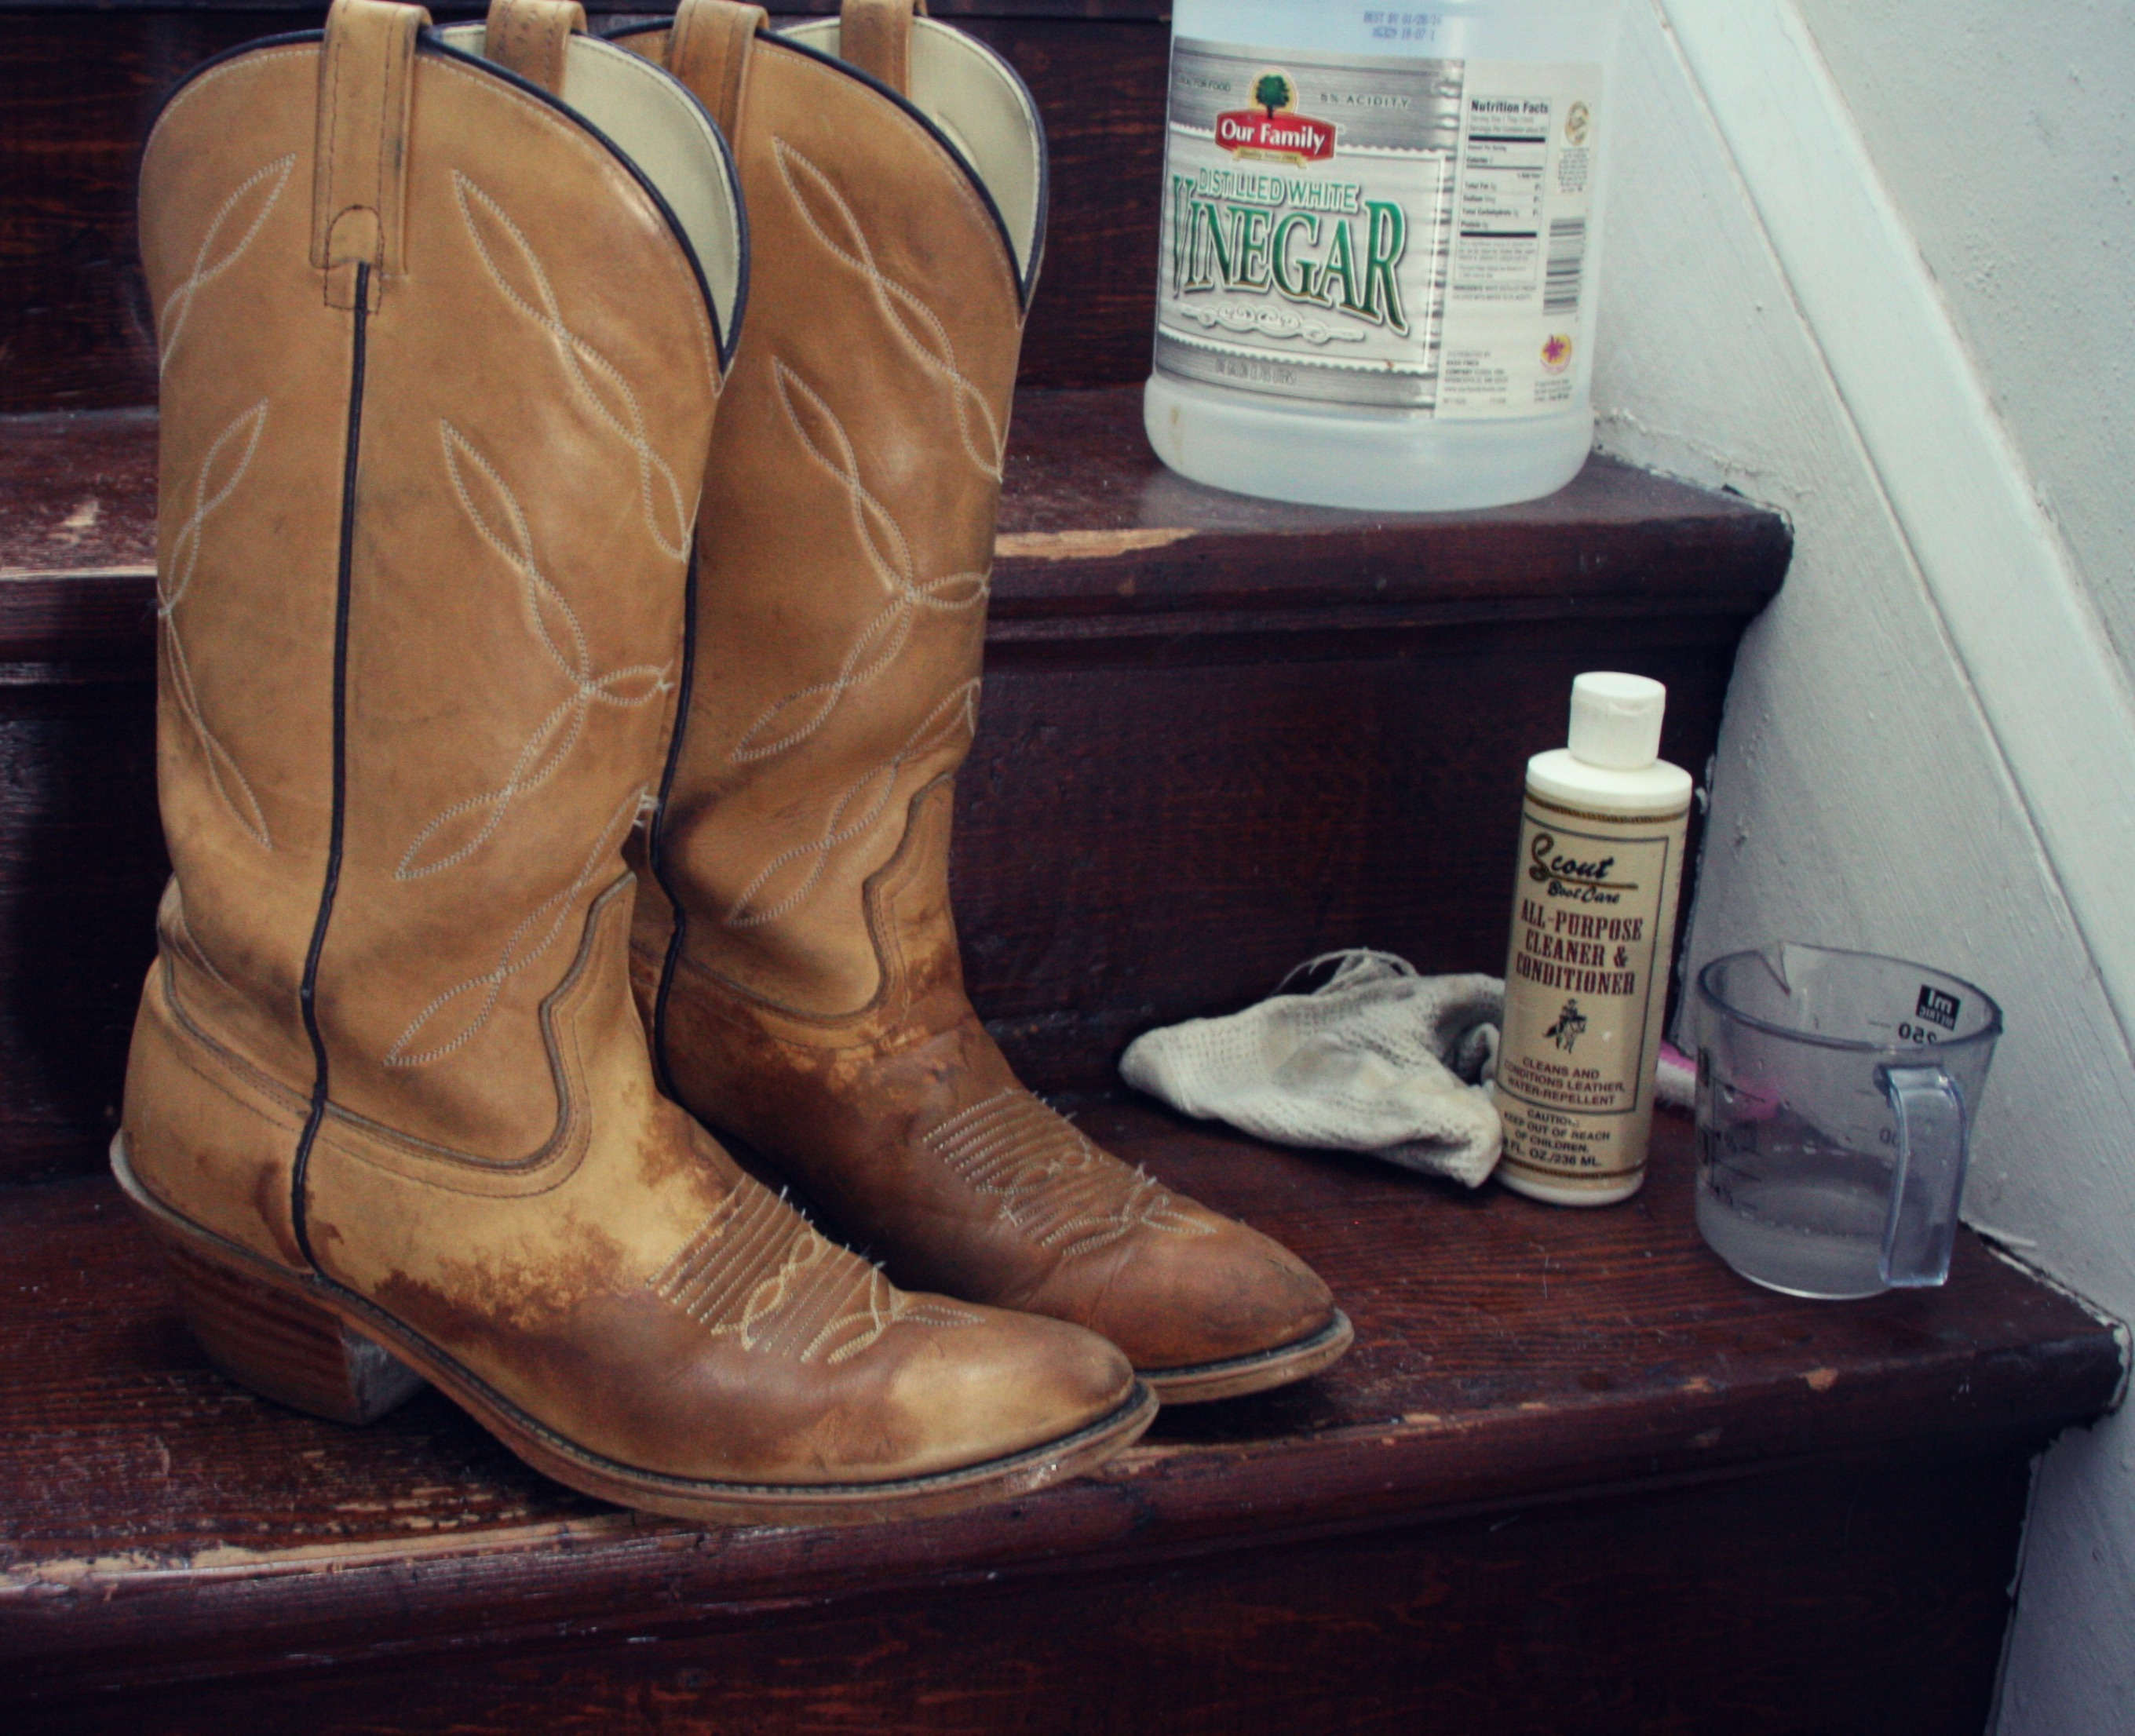 how to: remove salt stains from boots | high plains thrifter